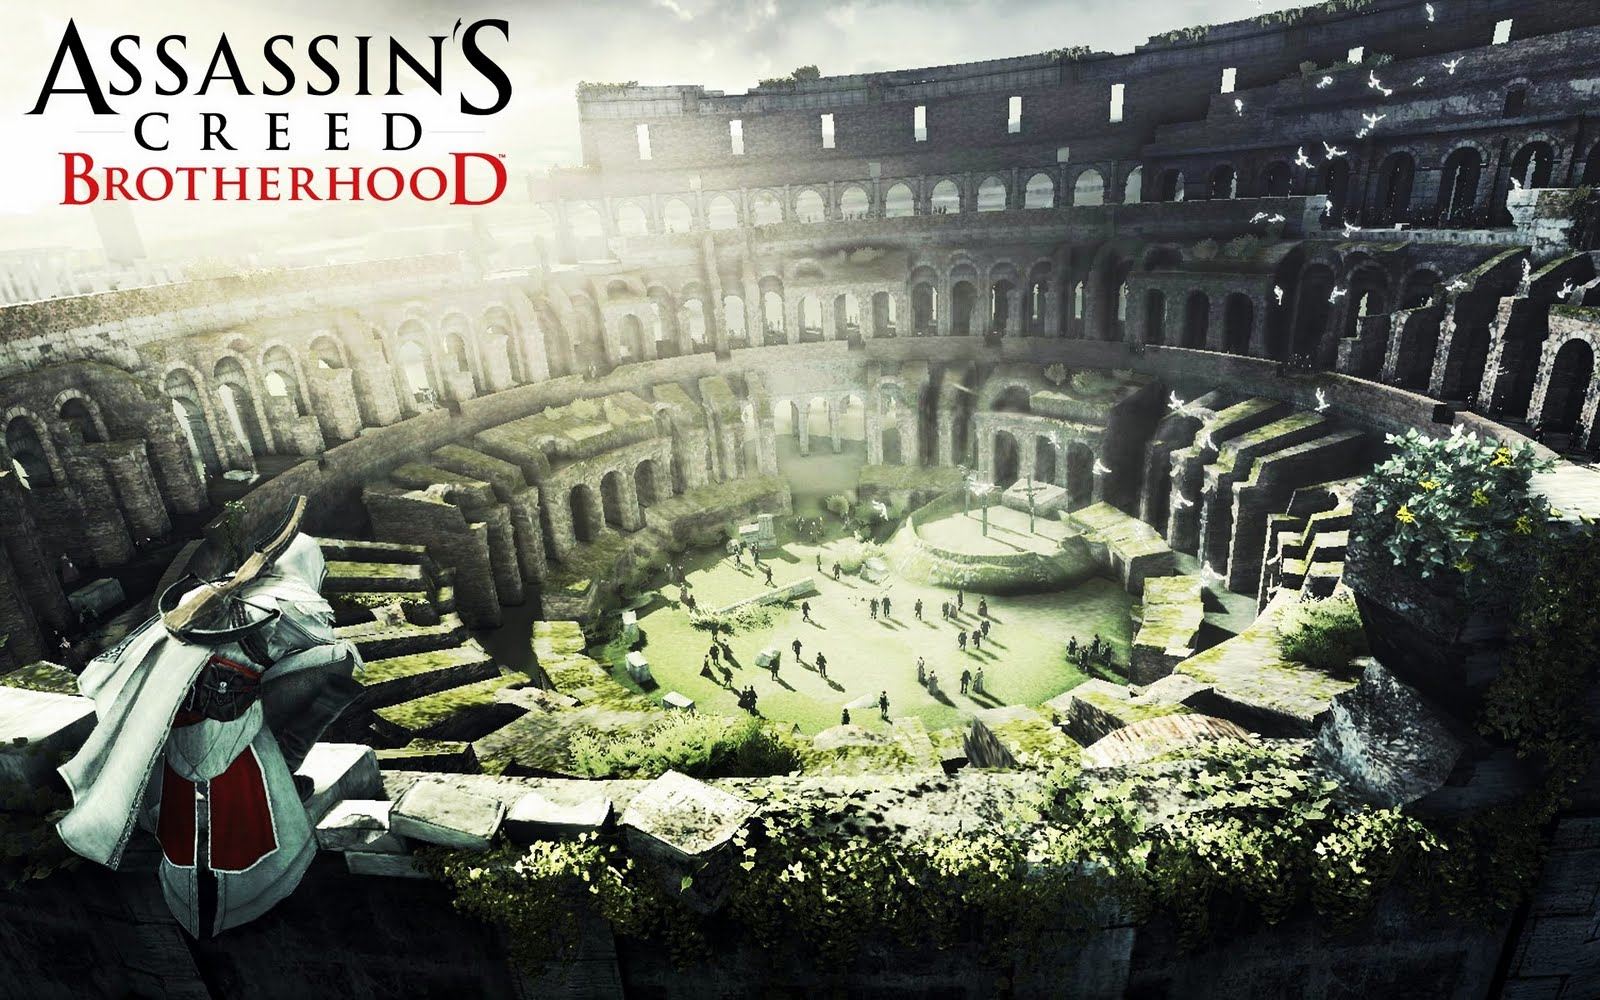 http://4.bp.blogspot.com/-_gQIXKQkjfQ/TcAs6Jr662I/AAAAAAAAABs/_t8d2TnFGSk/s1600/assassins-creed-brotherhood-1.jpg